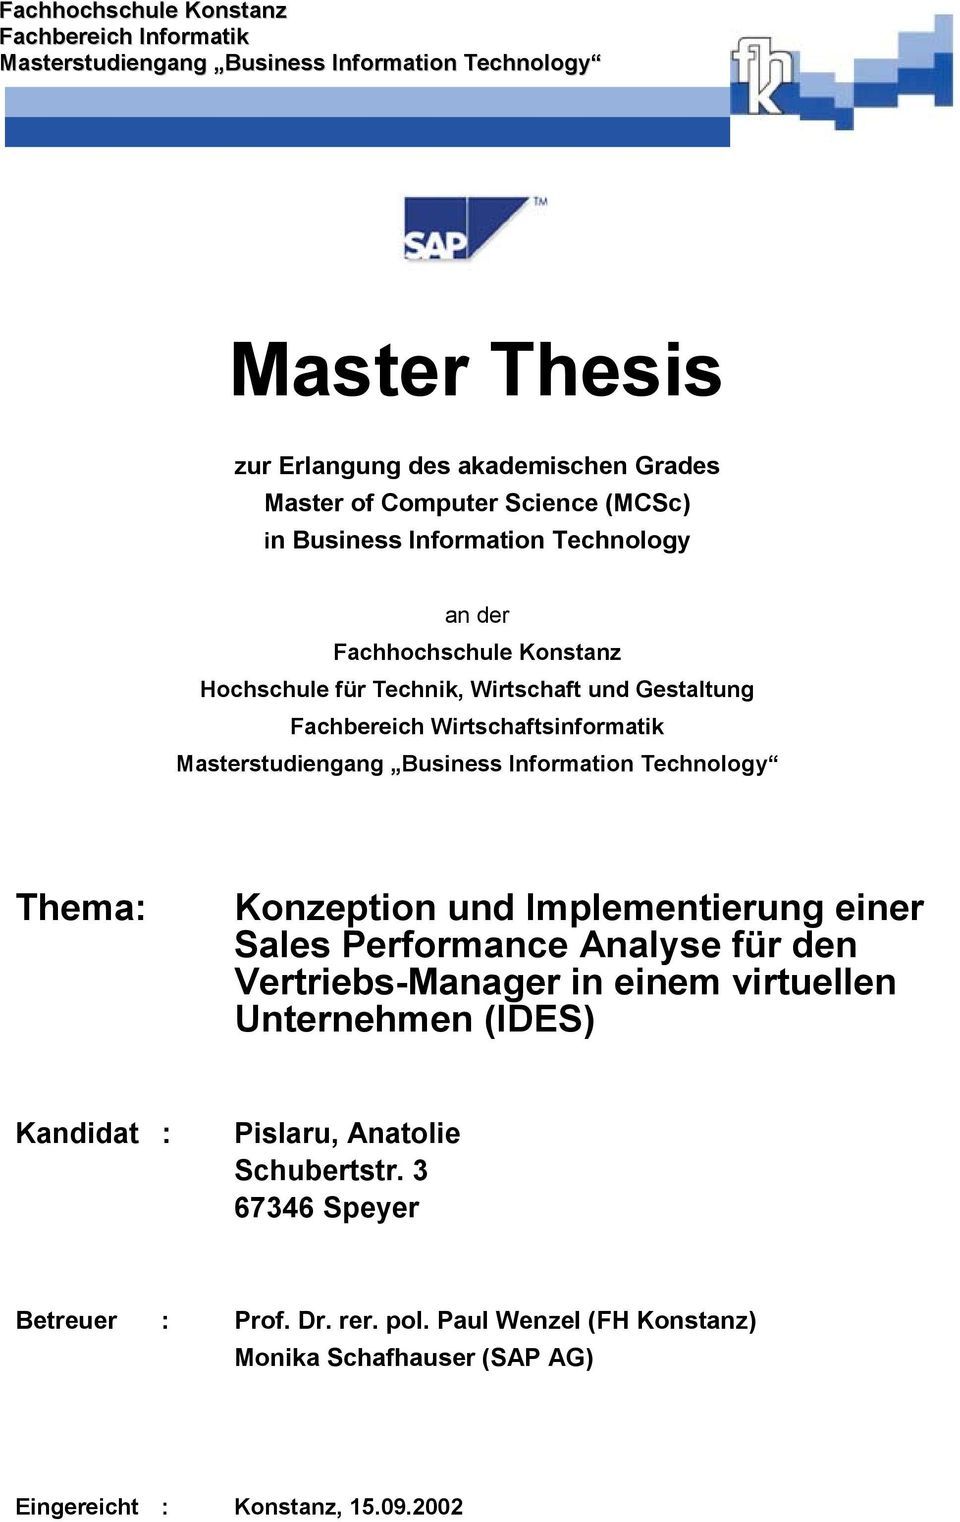 Masterstudiengang Business Information Technology Thema: Konzeption und Implementierung einer Sales Performance Analyse für den Vertriebs-Manager in einem virtuellen